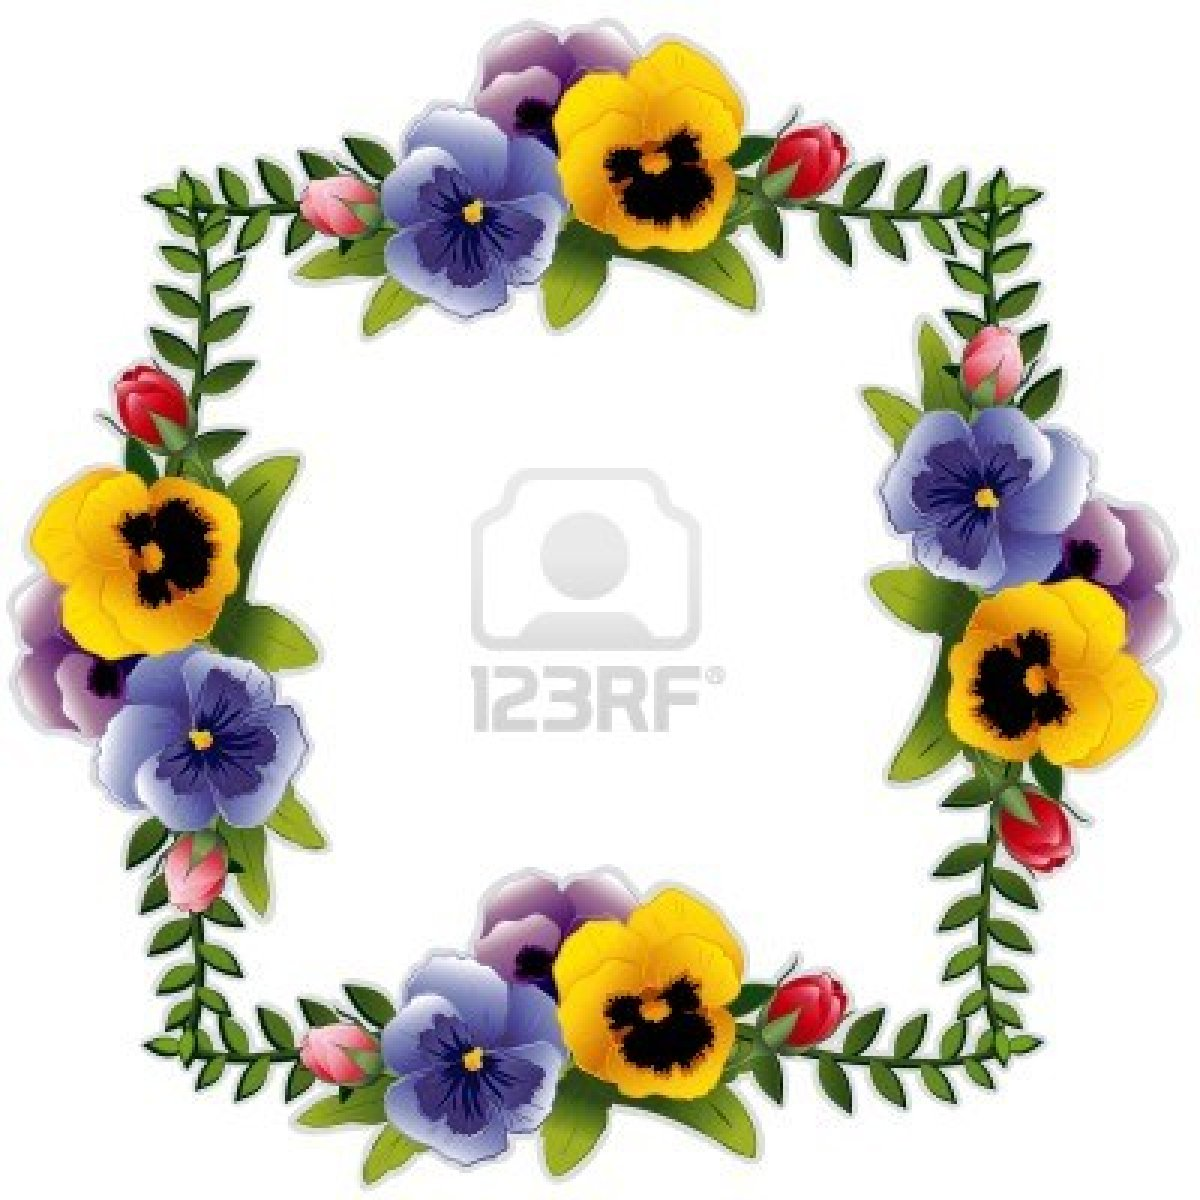 Pansy clipart border Images Pansy Panda Clipart pansy%20clipart